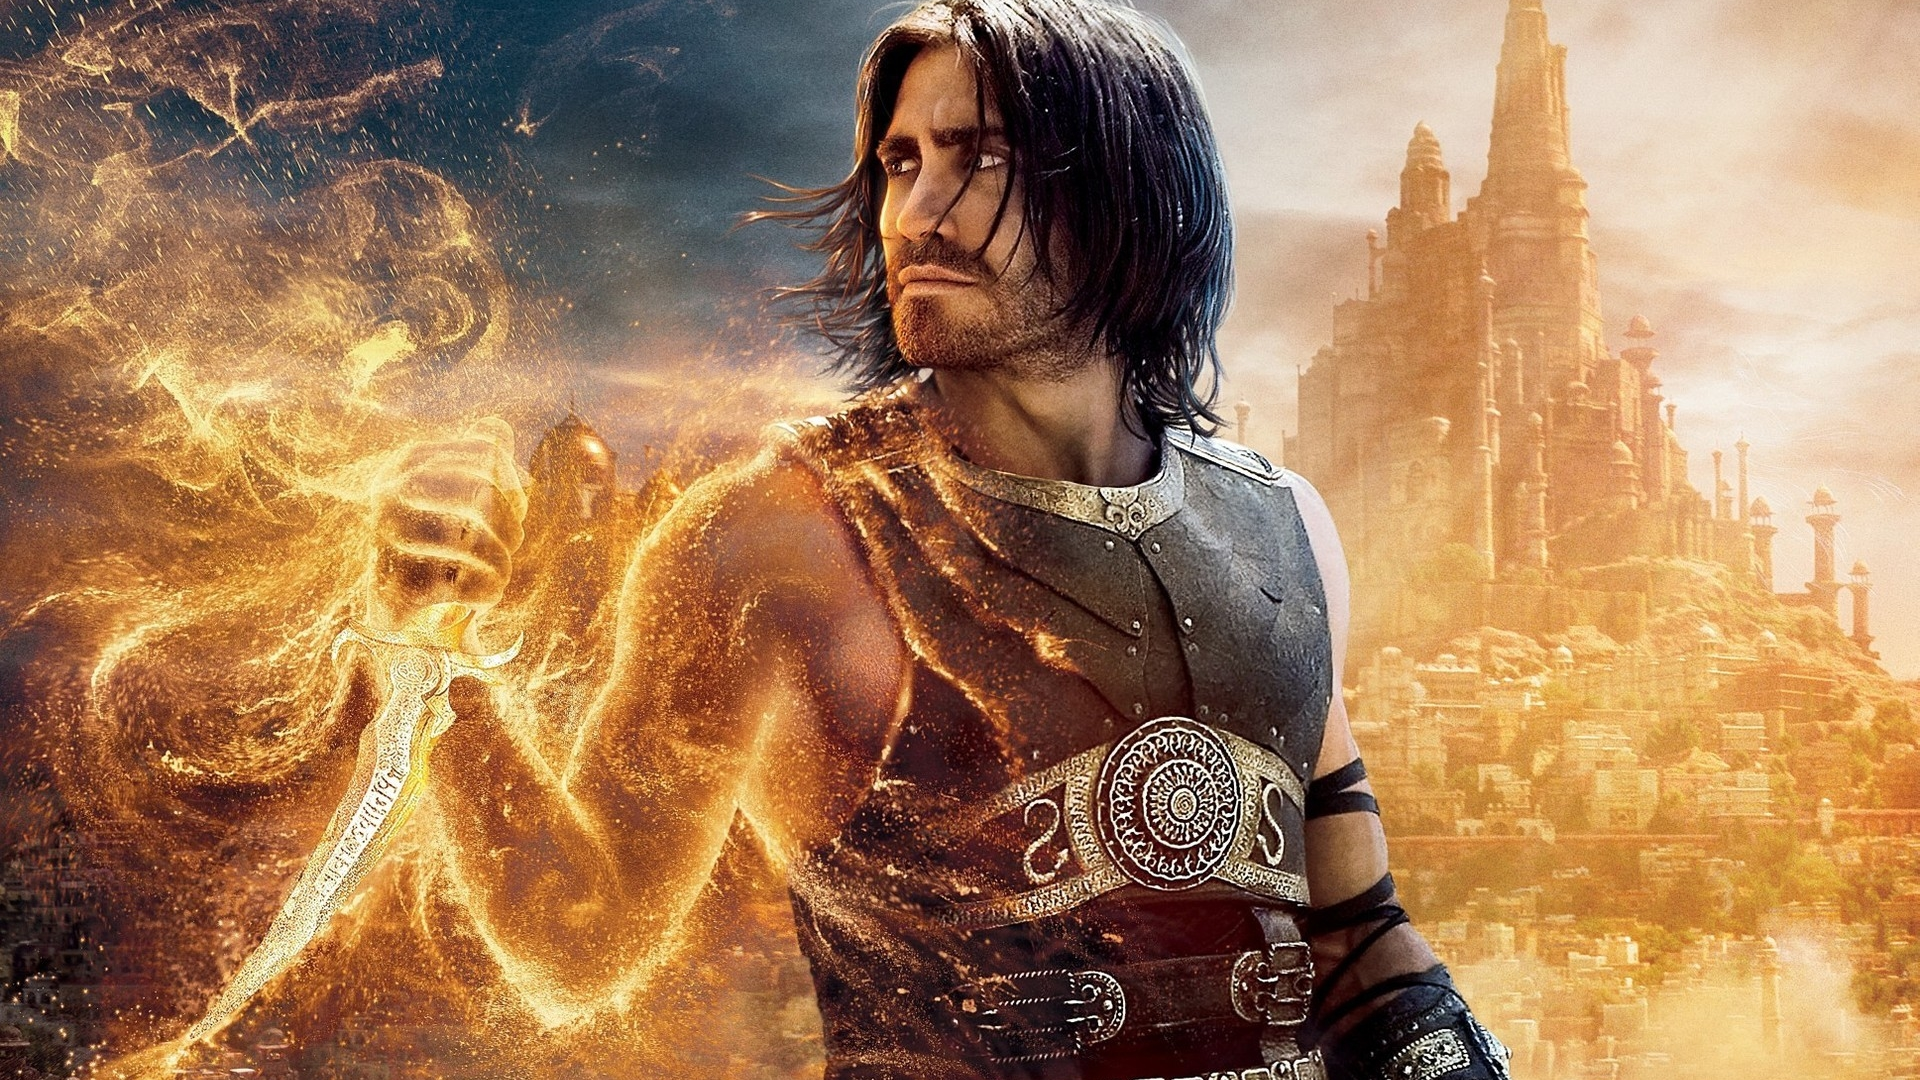 Prince Of Persia The Sands Of Time Prince Of Persia The Sands Of Time Wallpaper 41394642 Fanpop